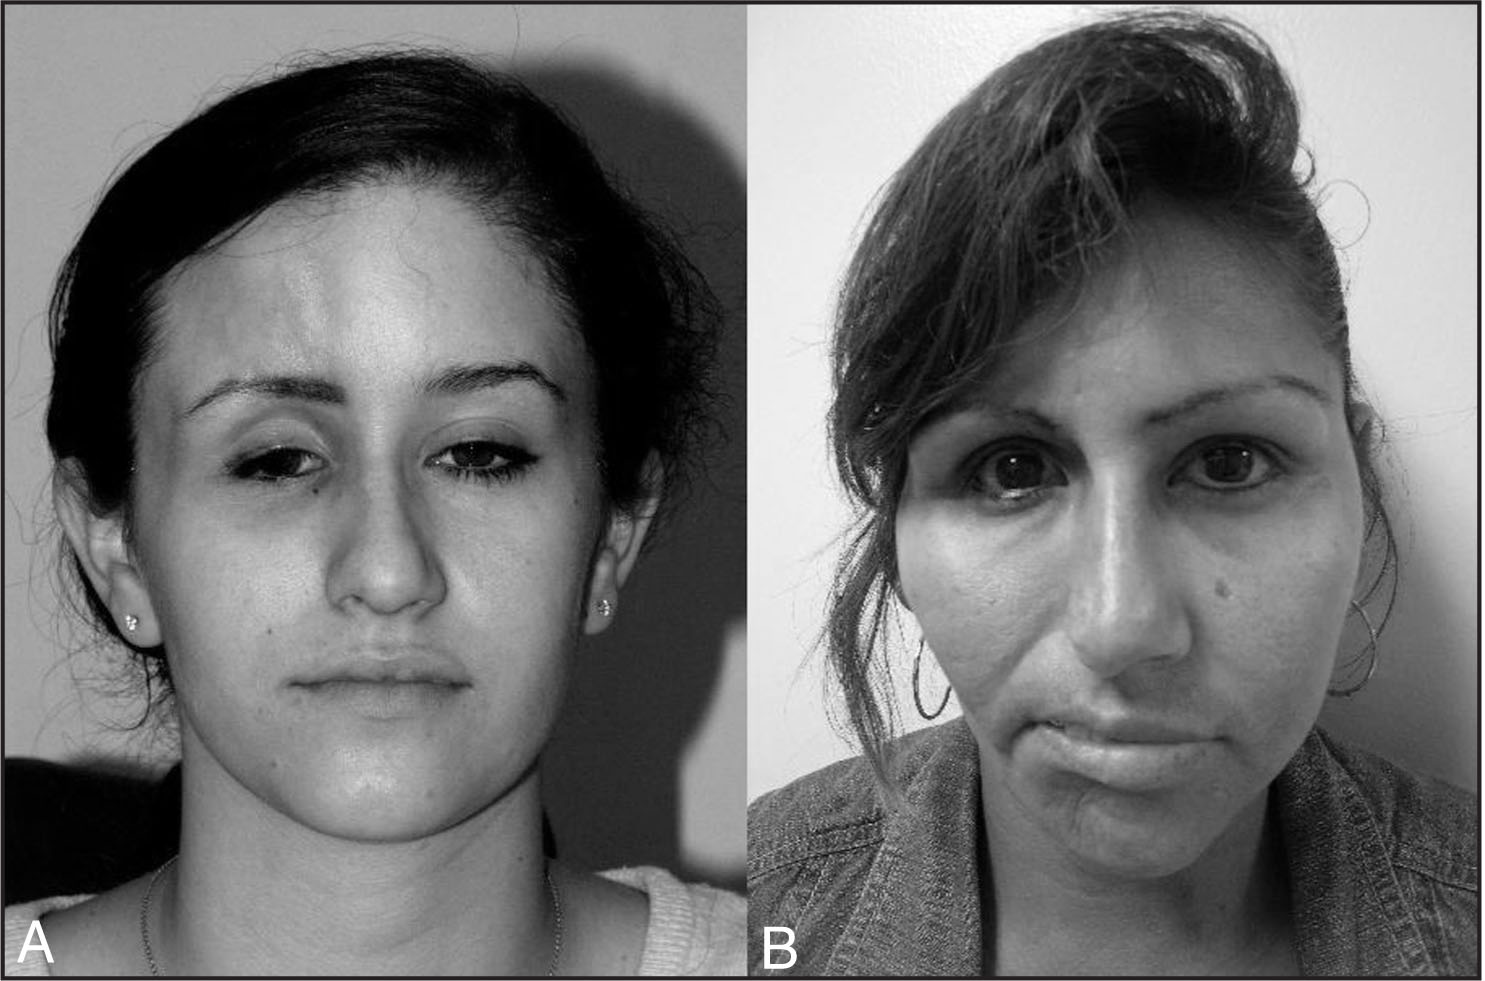 (A) A 17-Year-Old Girl (case 1) and (B) a 32-Year-Old Woman (case 2) with Parry–Romberg Syndrome Involving the Right Side of the Face.